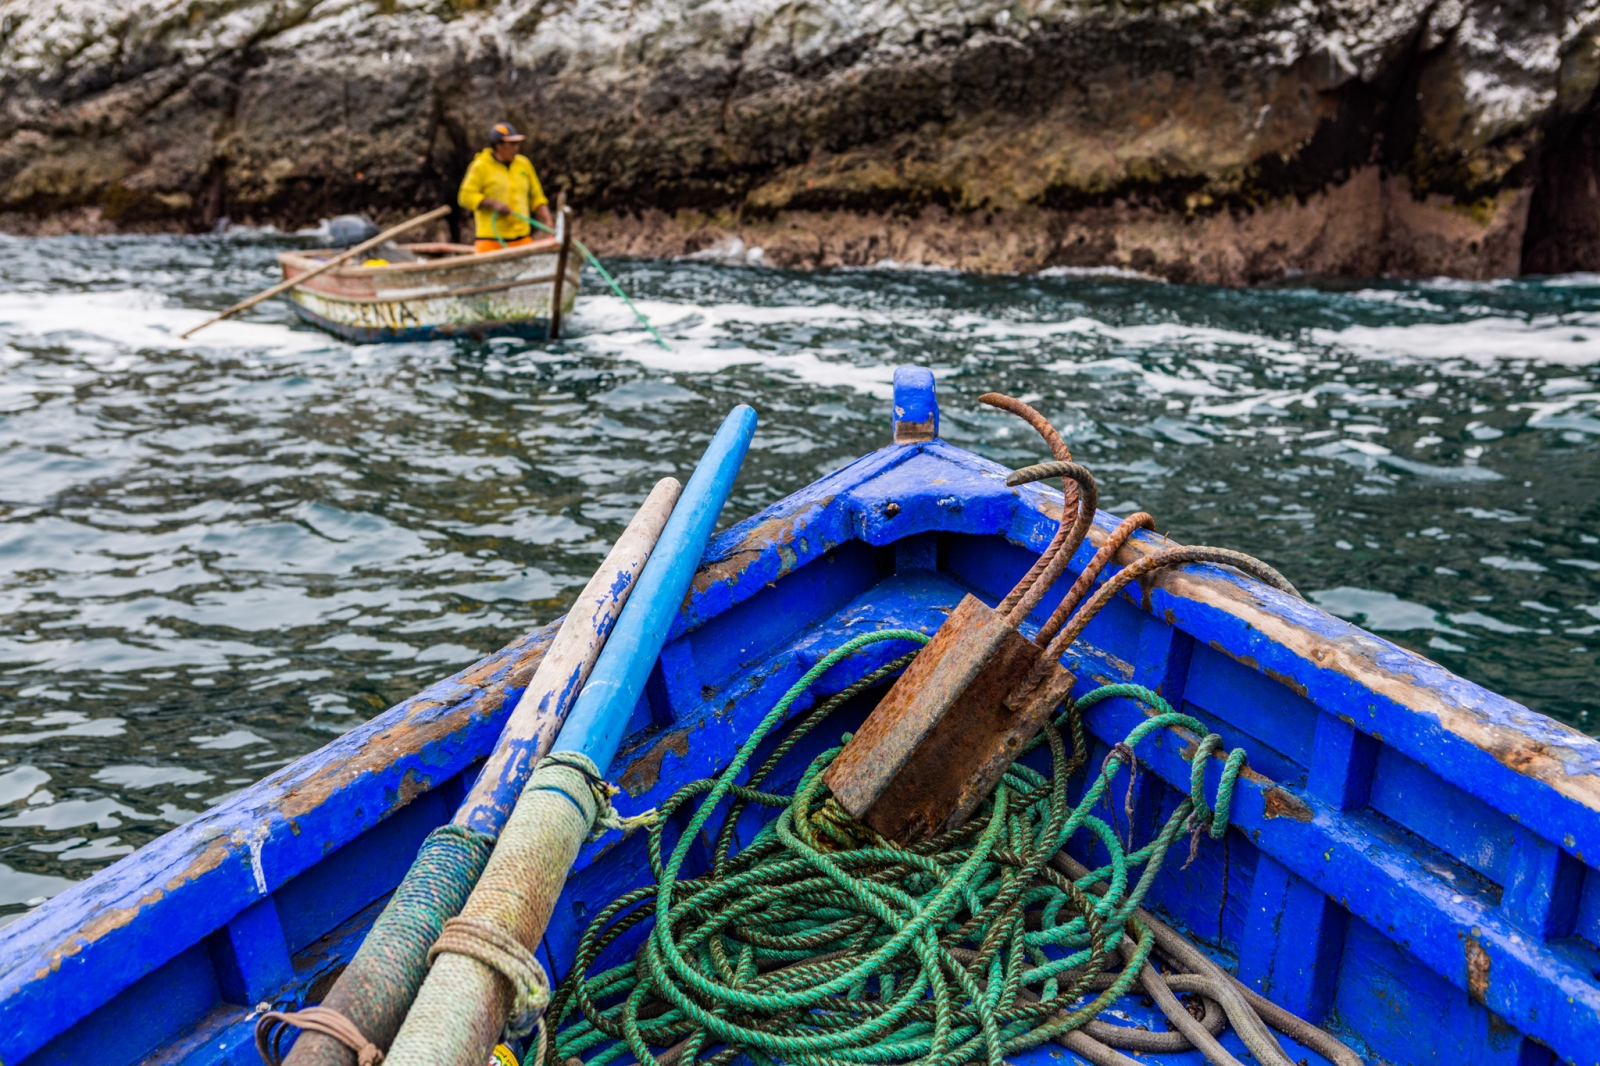 Fishing in the Pescadore Islands in Ancón, Peru. From a personal project on new models in fisheries management.